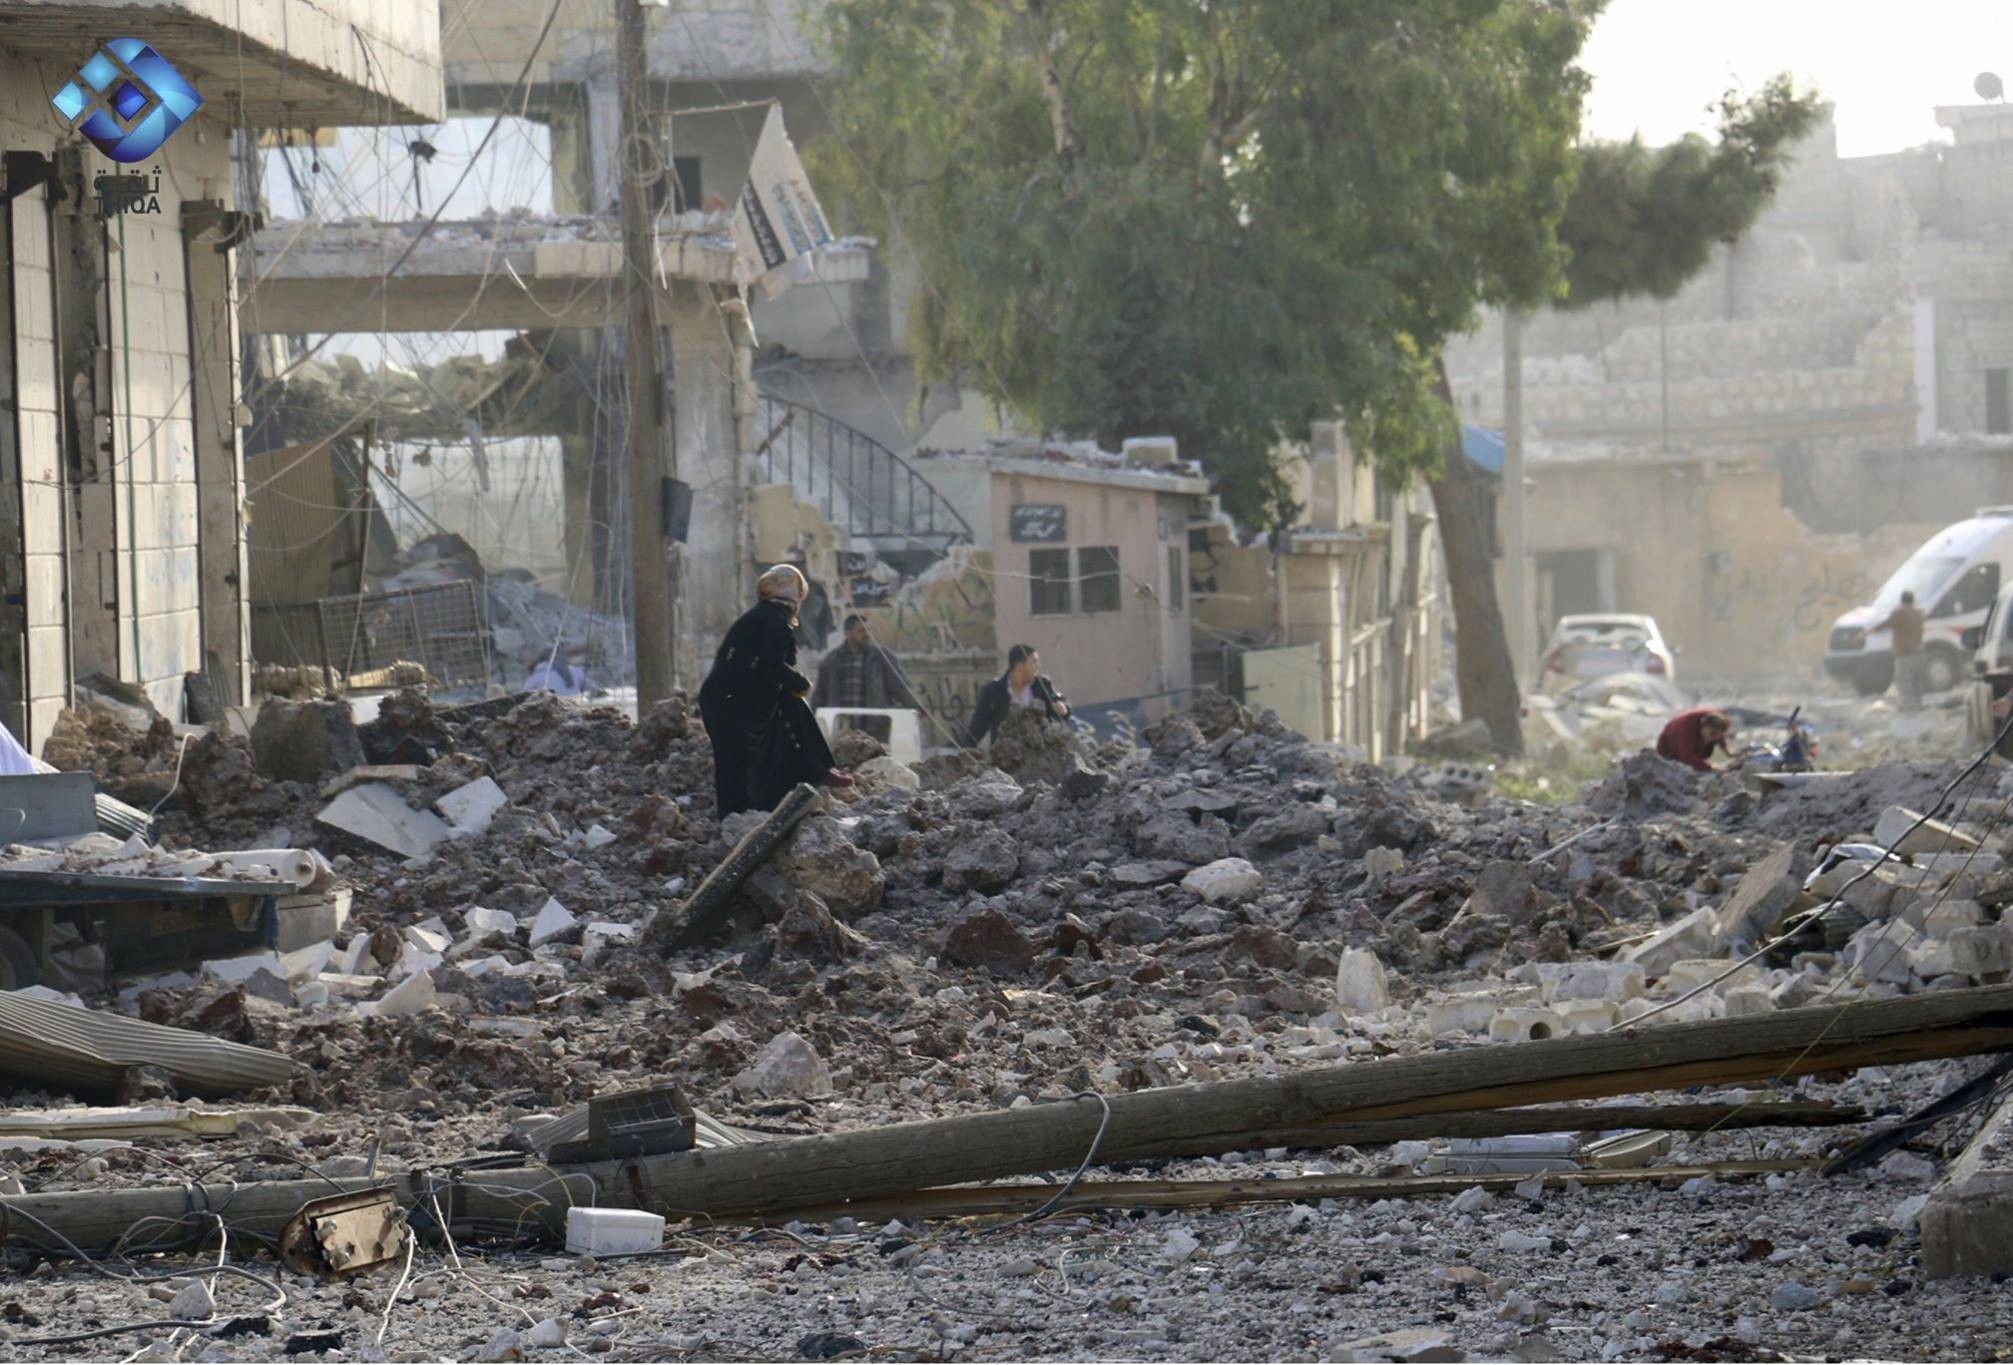 This image shows people inspecting damage from airstrikes on Atareb, in the opposition-held countryside outside Aleppo Syria, Monday, Nov. 13, 2017. (Thiqa News via AP)